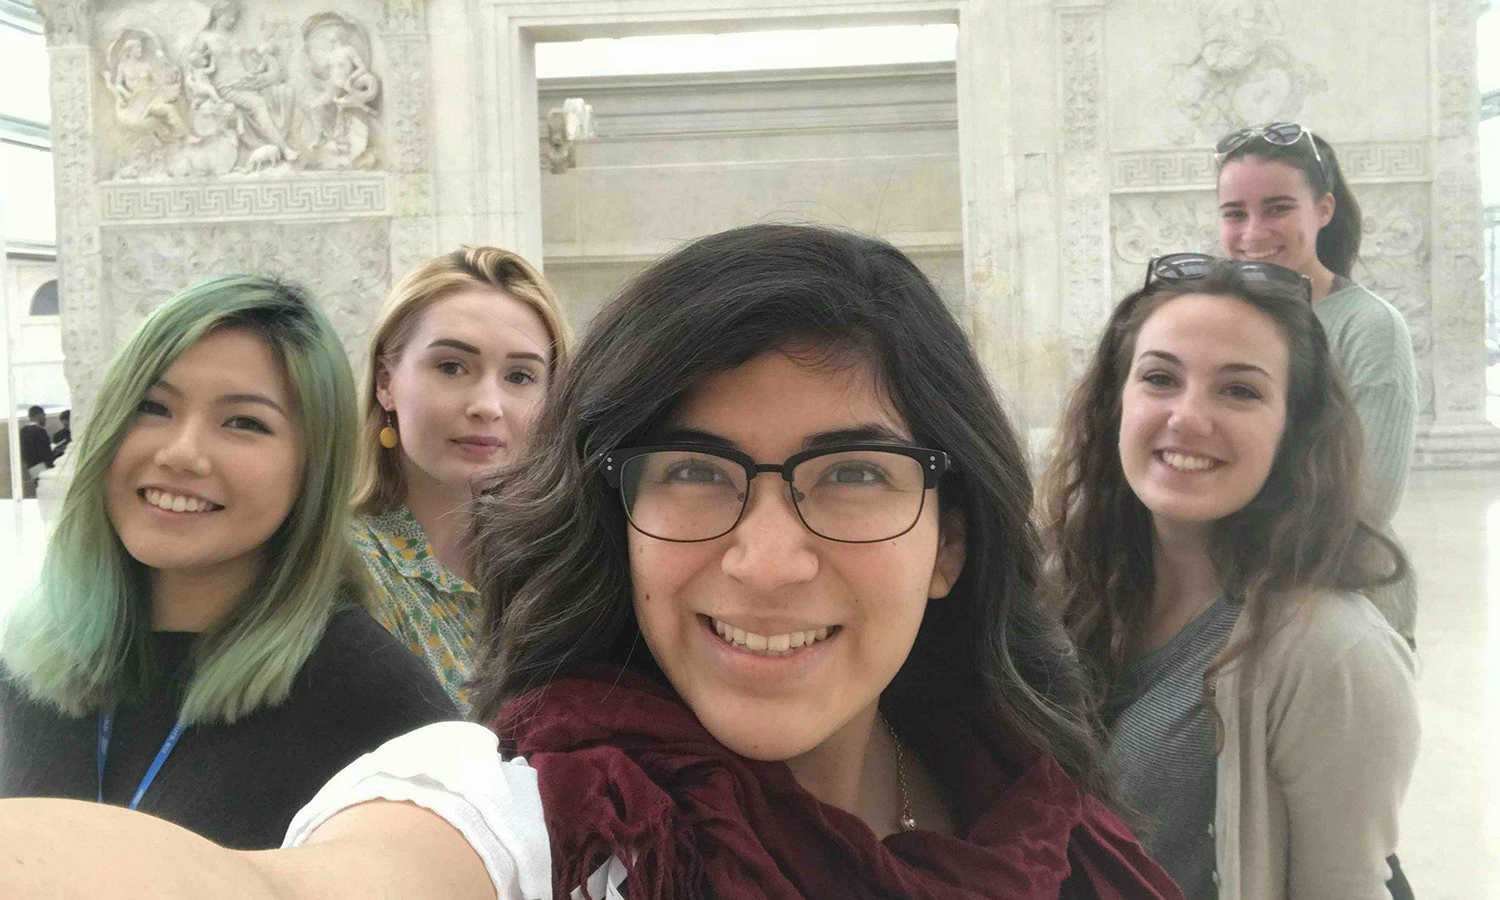 Claire Ching 'X, Kristine Vann '19, Leslie Colunga 'X, Yellie LaBarre 'X and Jamie Soucie 'X snap a photo while studying abroad in Rome, Italy.